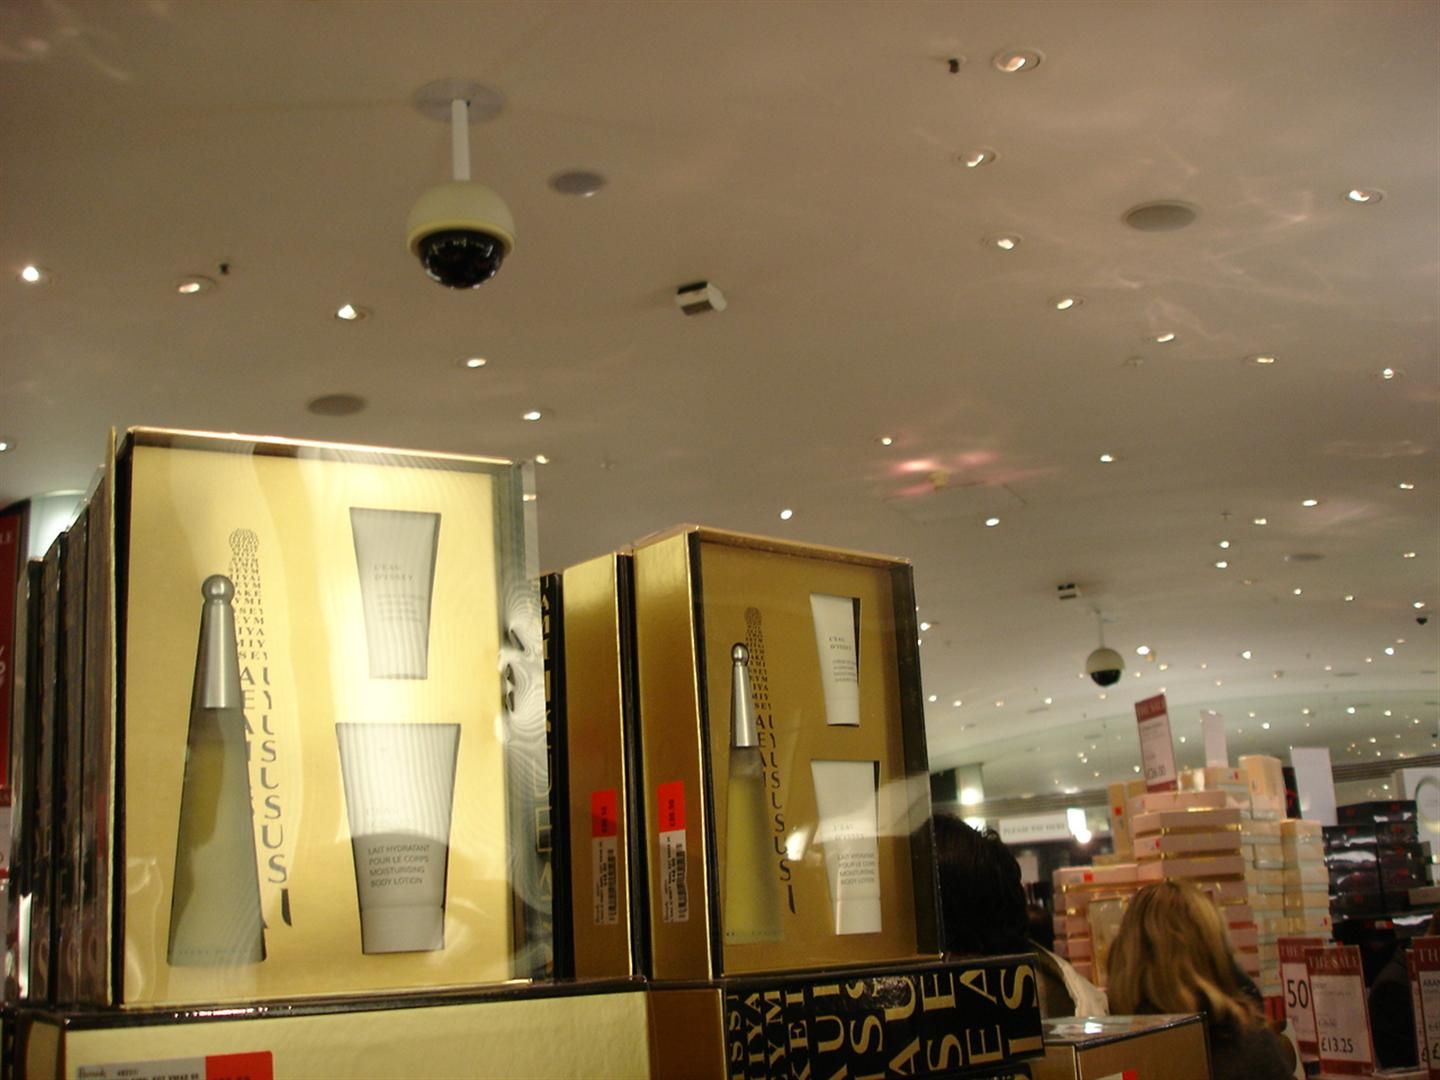 Day 6 Pic 6 - Inside Harrods - Fragrance Section